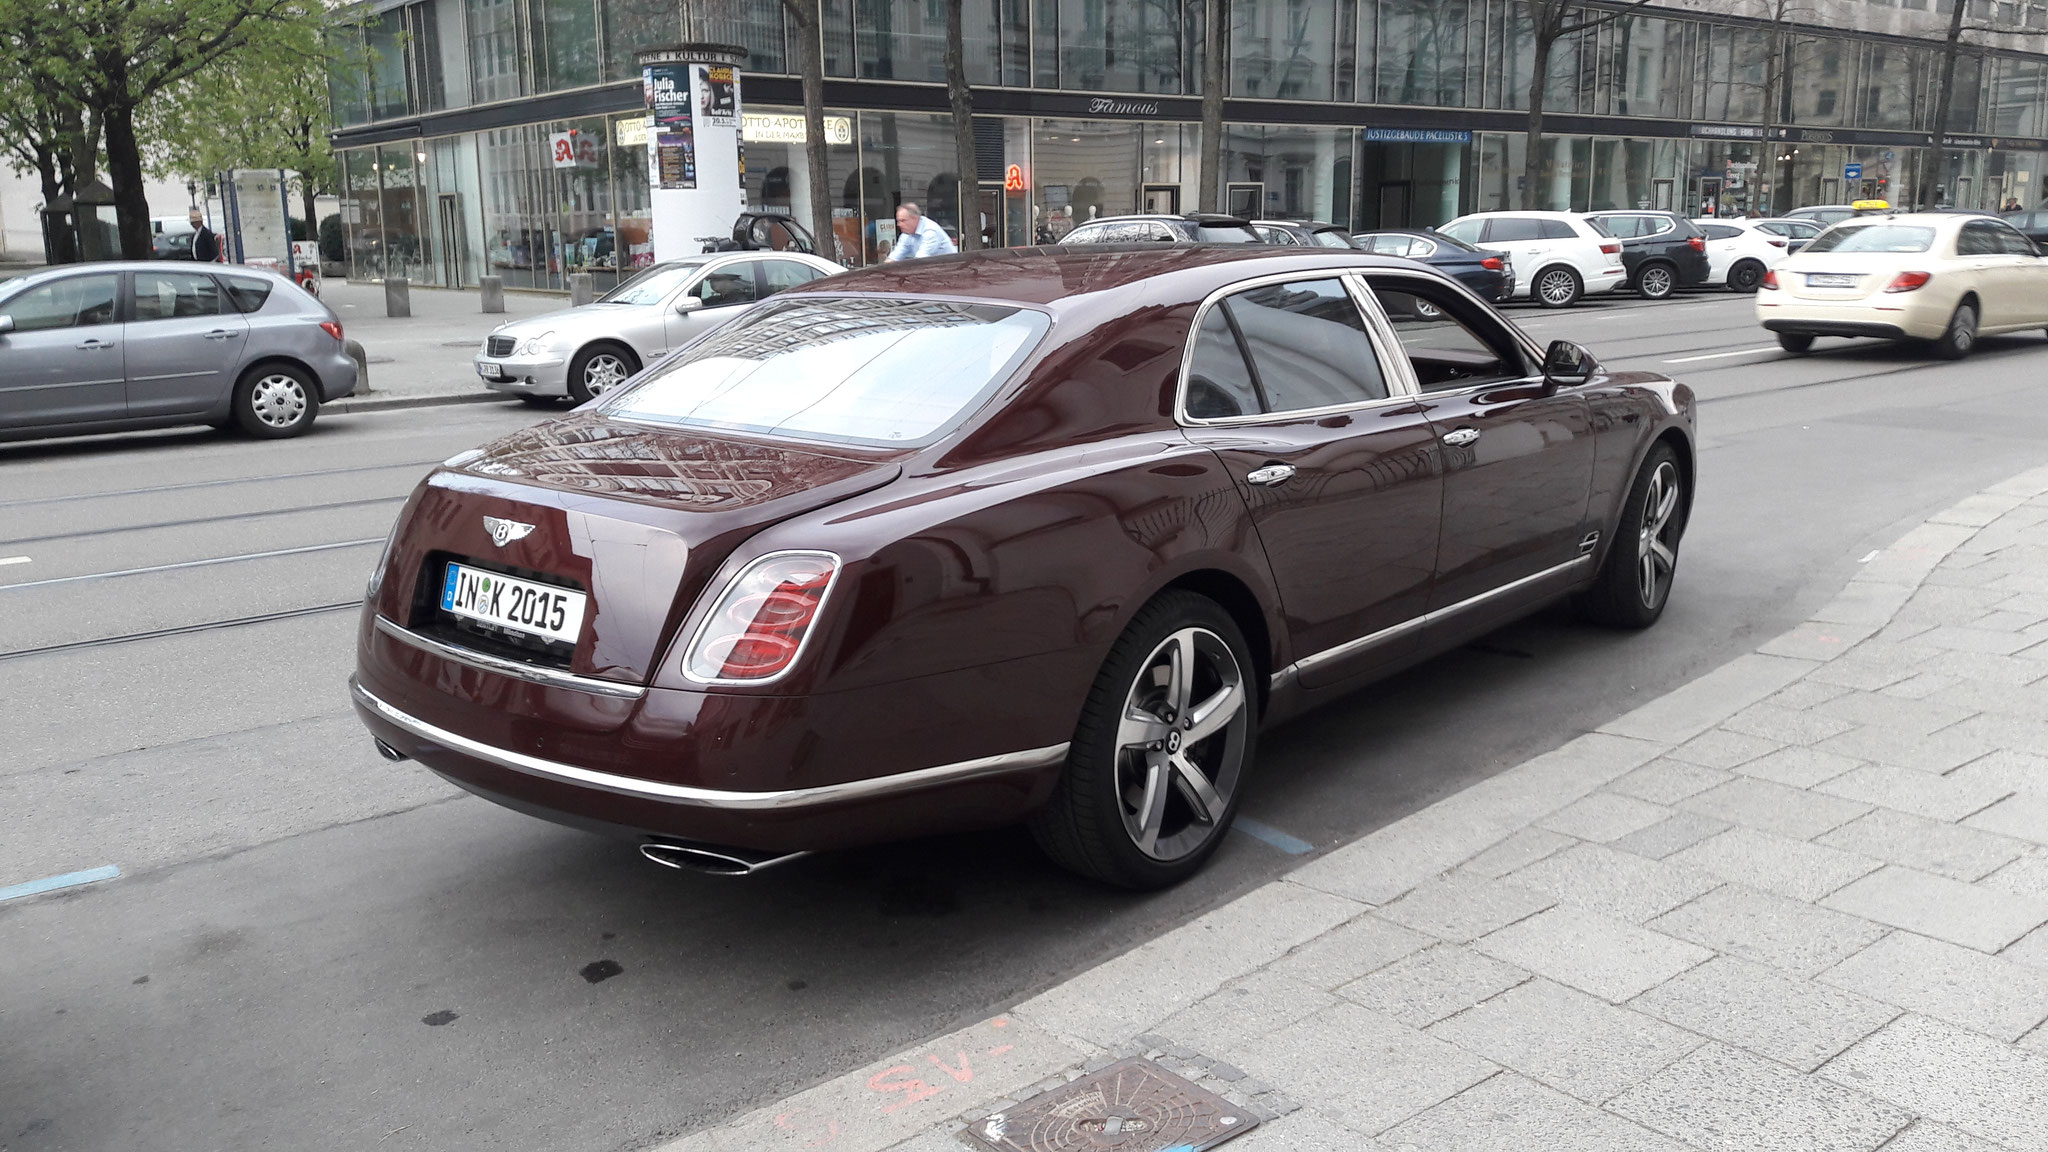 Bentley Mulsanne - IN-K-2015